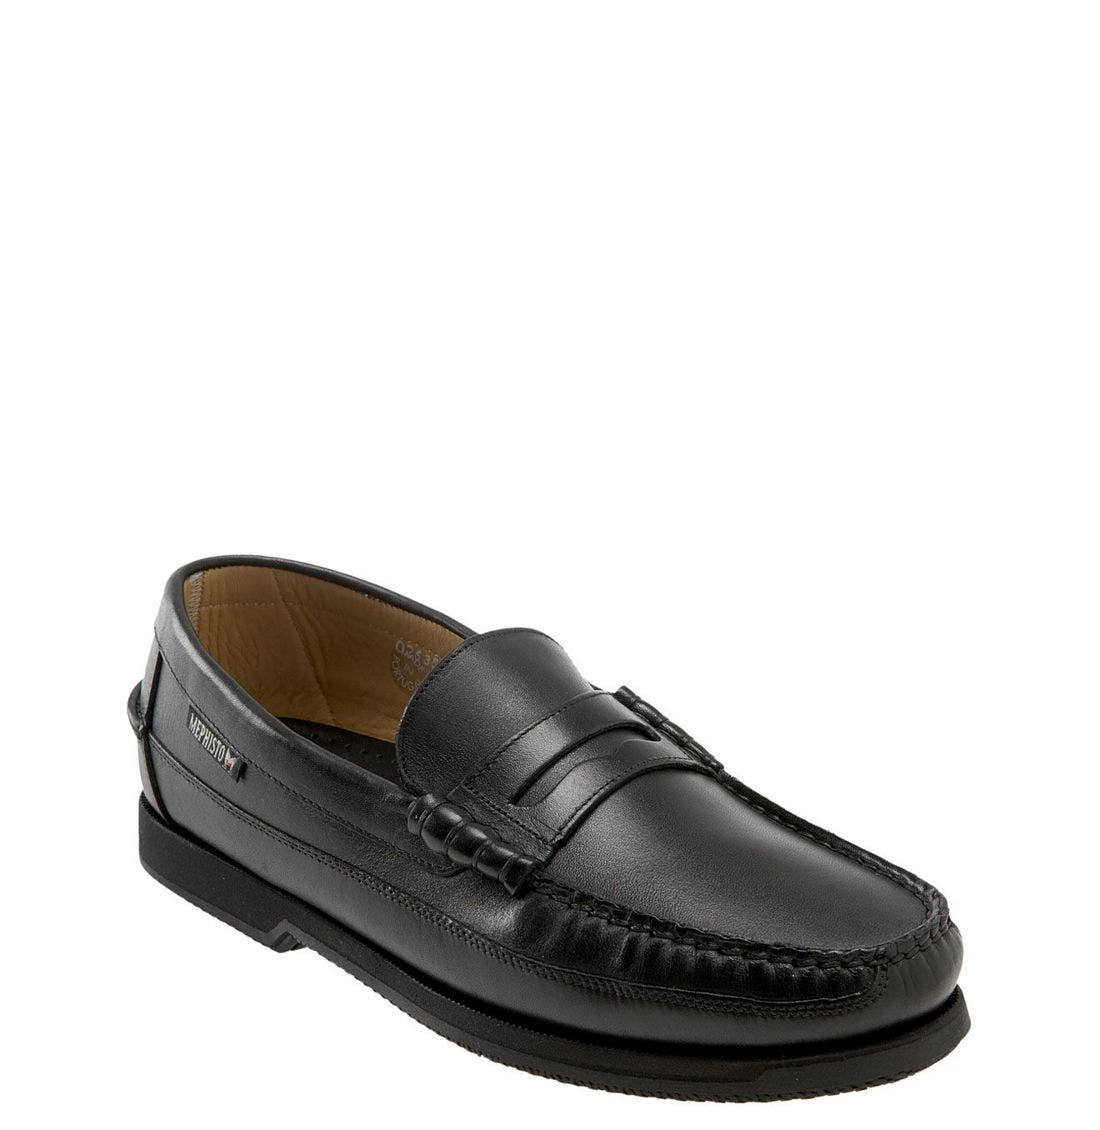 'Cap Vert' Penny Loafer,                             Main thumbnail 1, color,                             Black Leather